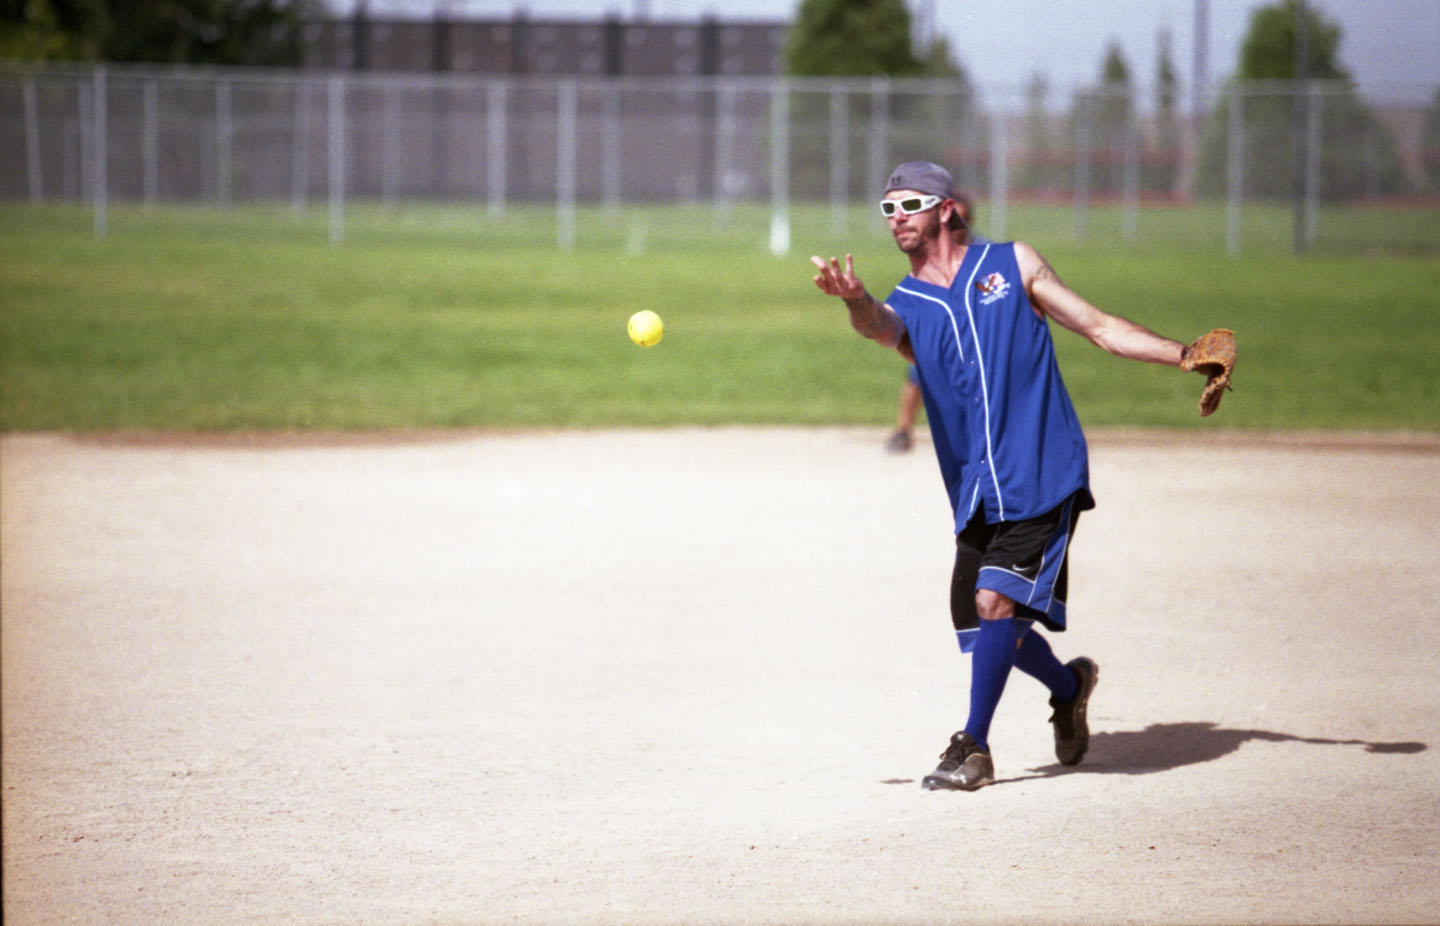 Blue pitcher throws the ball